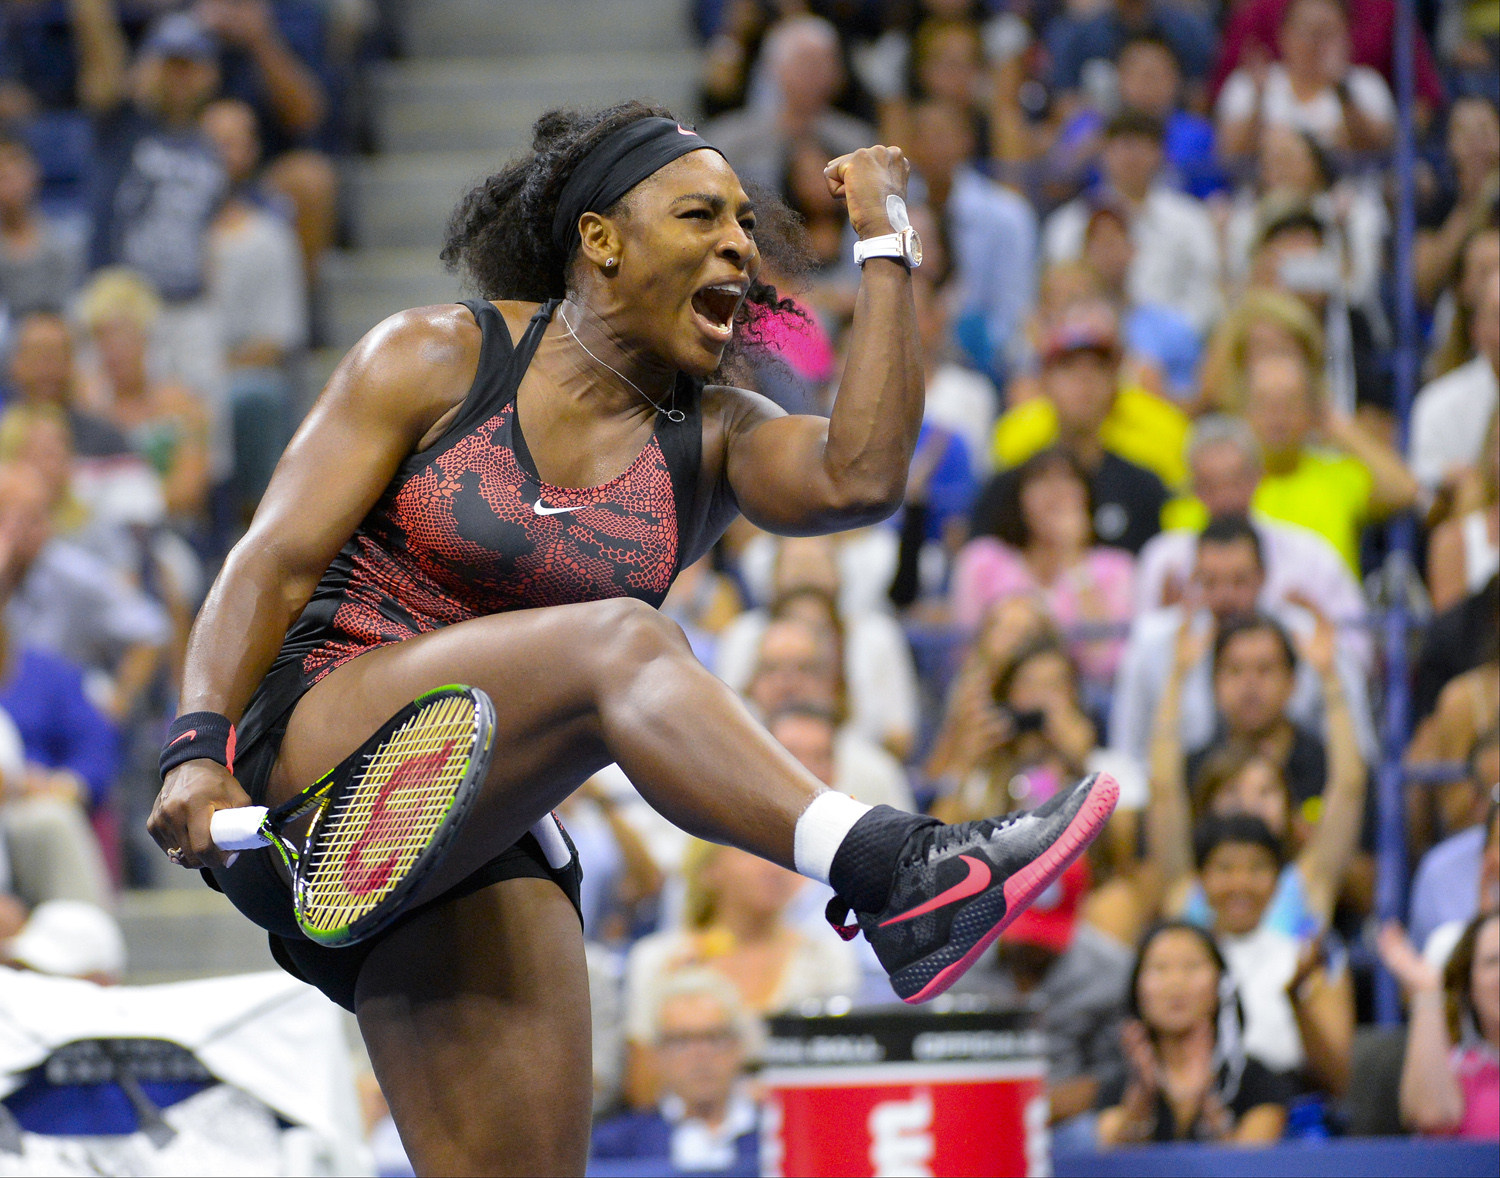 Sep 4, 2015; New York, NY, USA; Serena Williams of the USA after beating  Bethanie Mattek-Sands of the USA on day five of the 2015 U.S. Open tennis tournament at USTA Billie Jean King National Tennis Center.